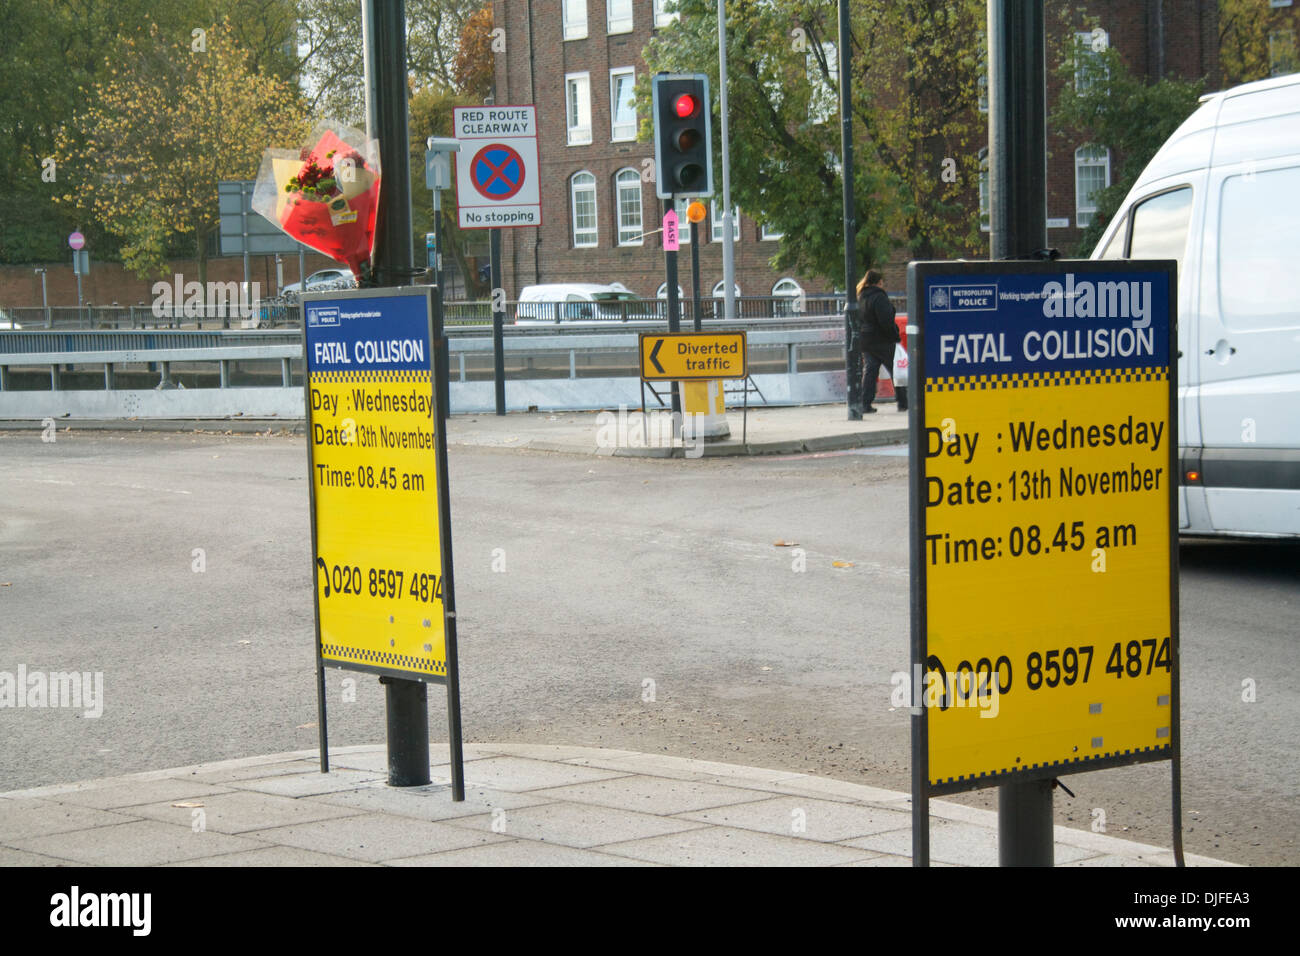 Police Fatal Collision signs at Bow flyover, London - Stock Image